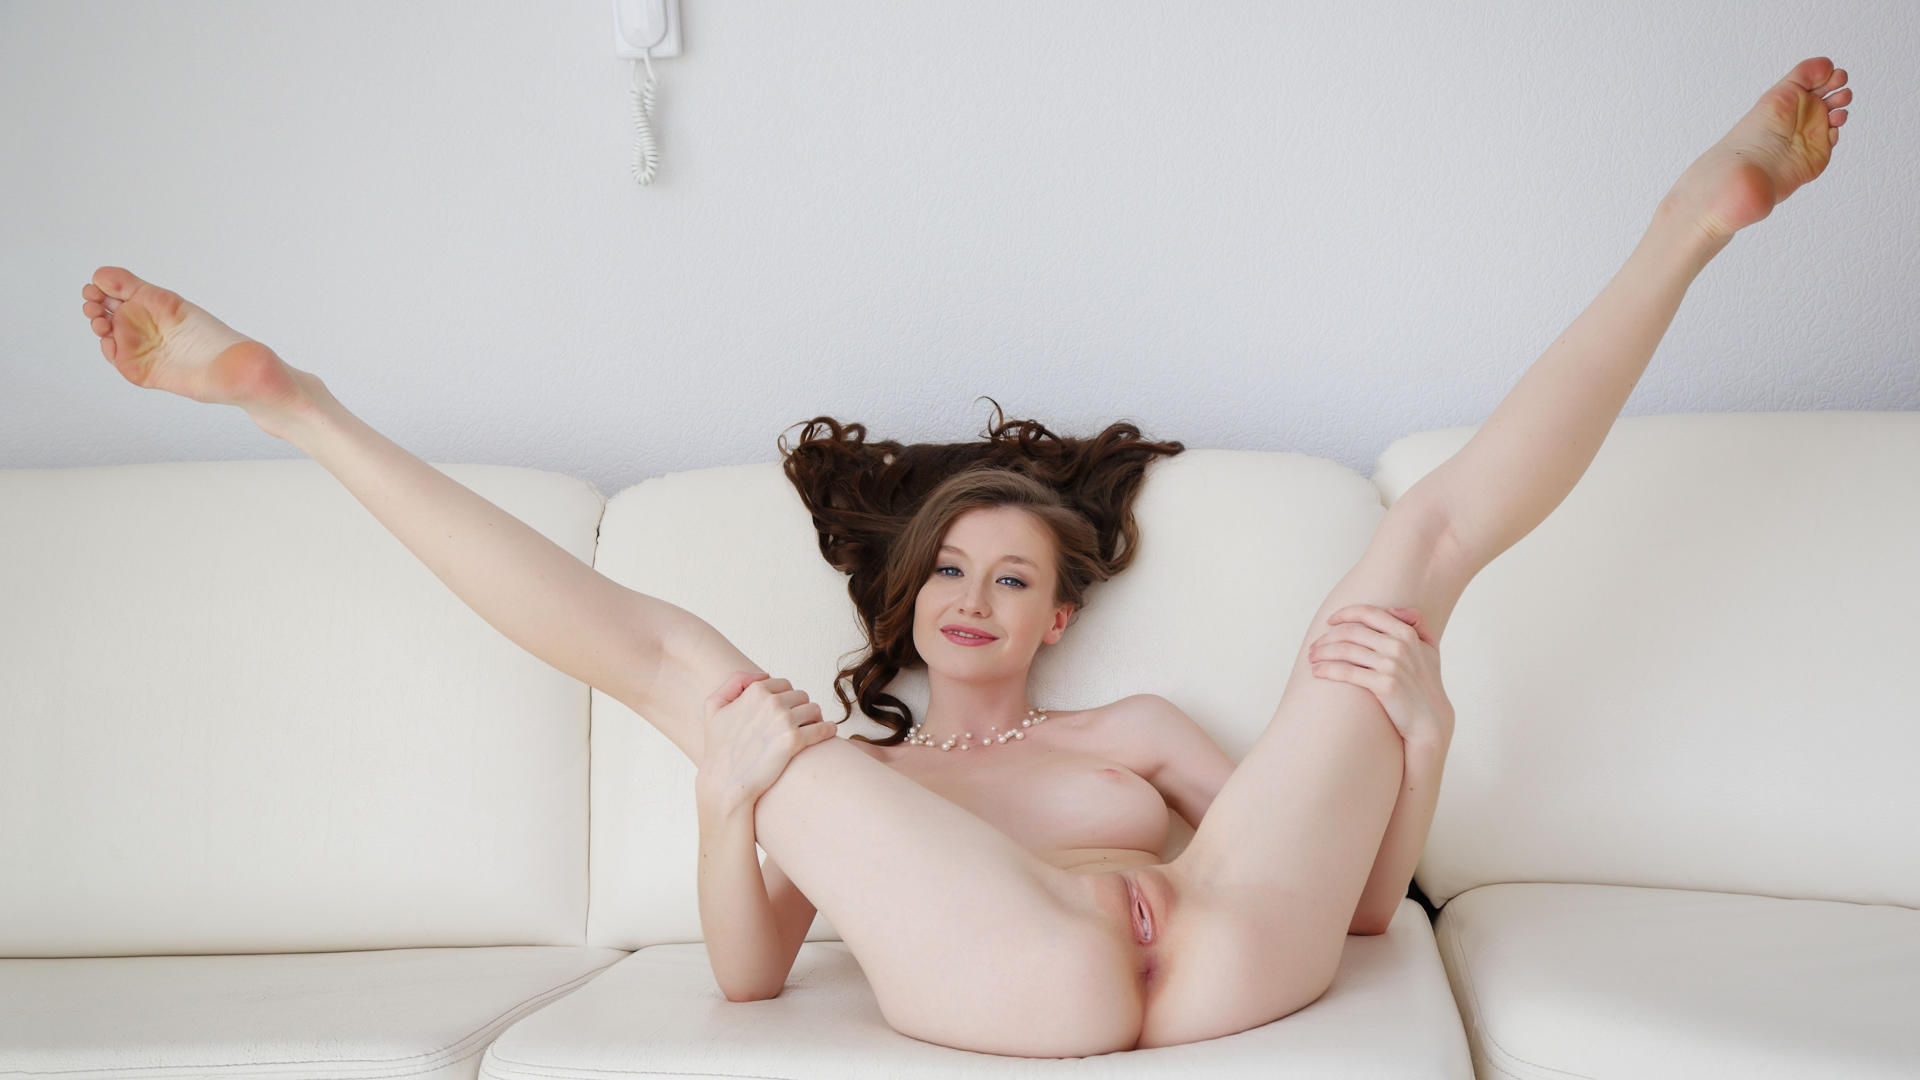 download photo 1920x1080 emily ass pussy gorgeous